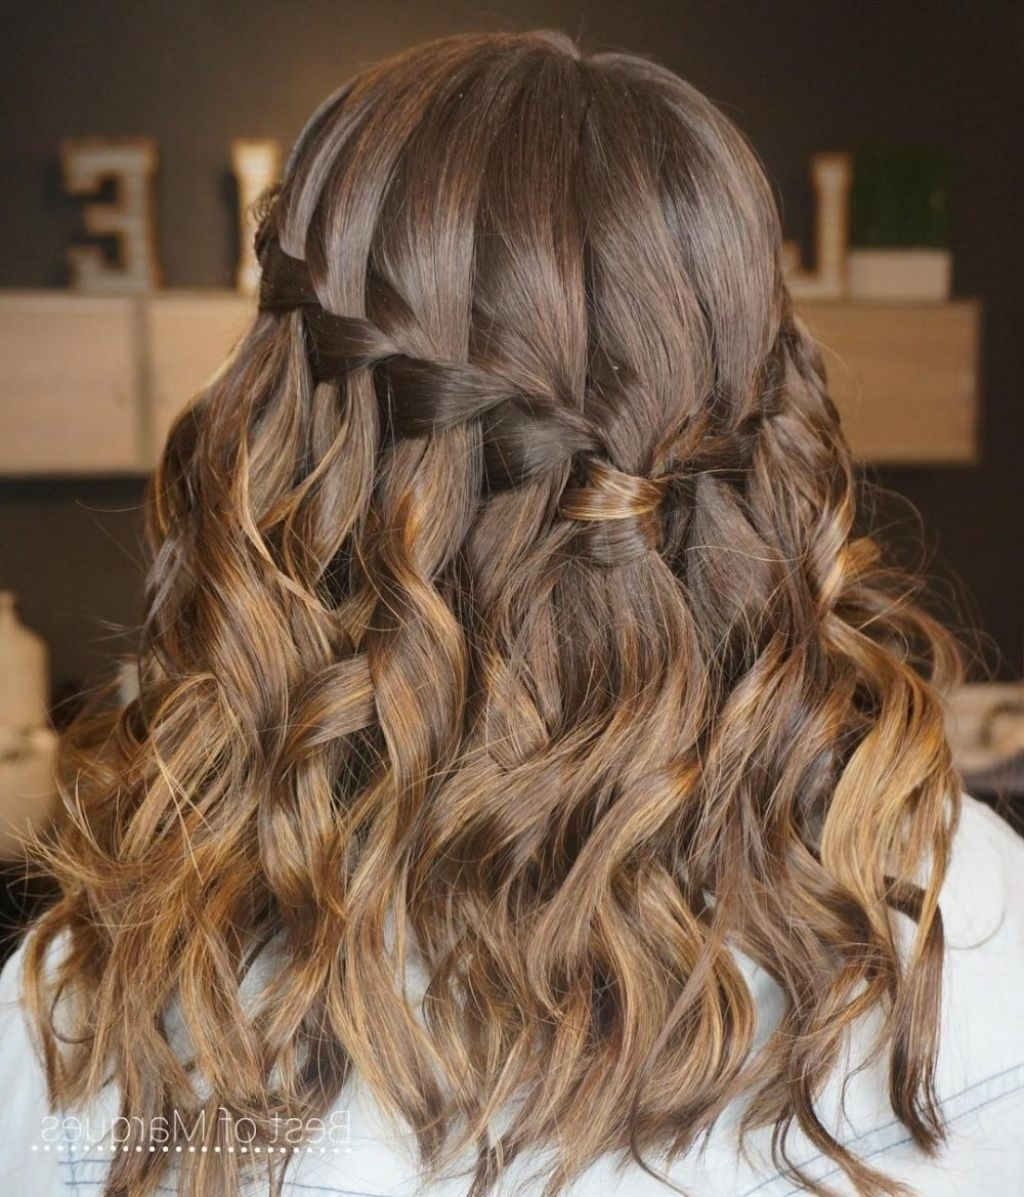 Latest Shoulder Length Hair Braided Hairstyles With Regard To √ 24+ Unique Braided Hairstyles For Medium Hair: 28 Cute Hairstyles (View 15 of 15)